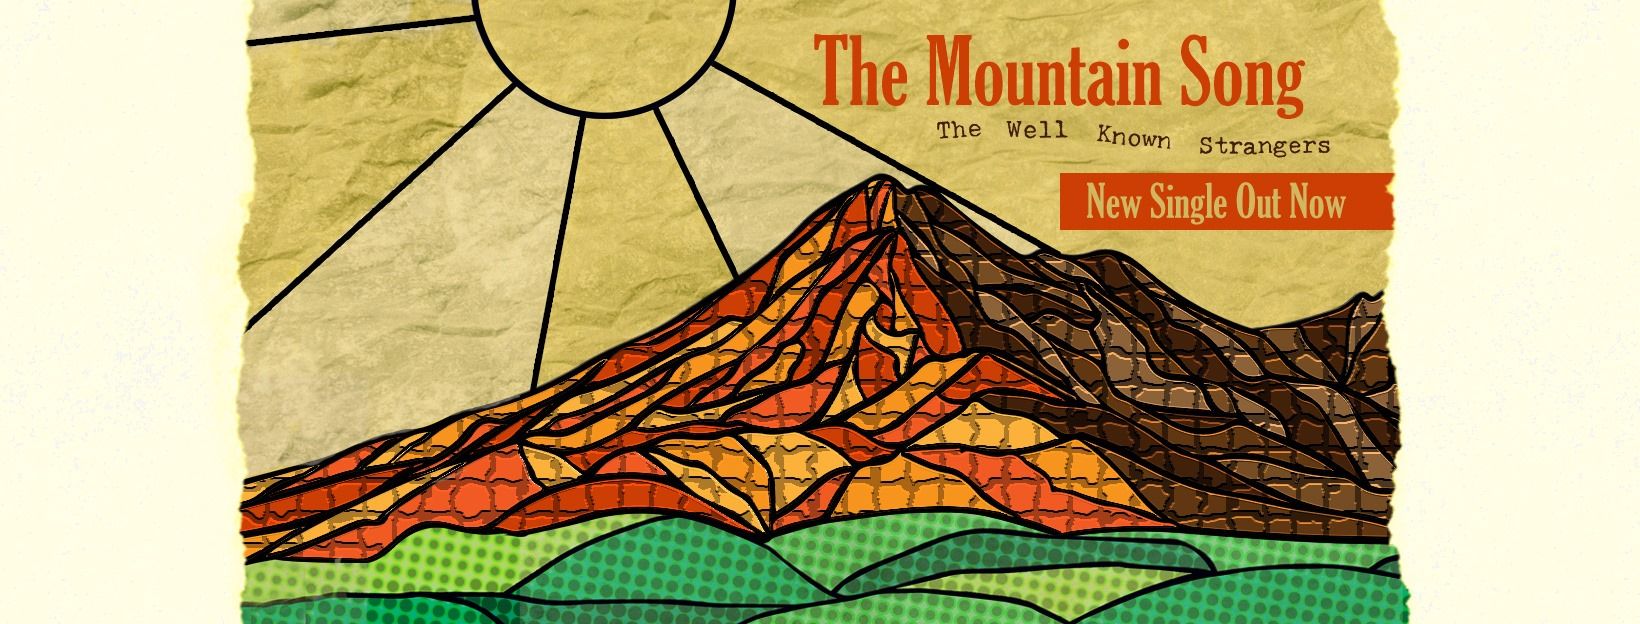 "The Well Known Strangers release new single, ""The Mountain Song"""